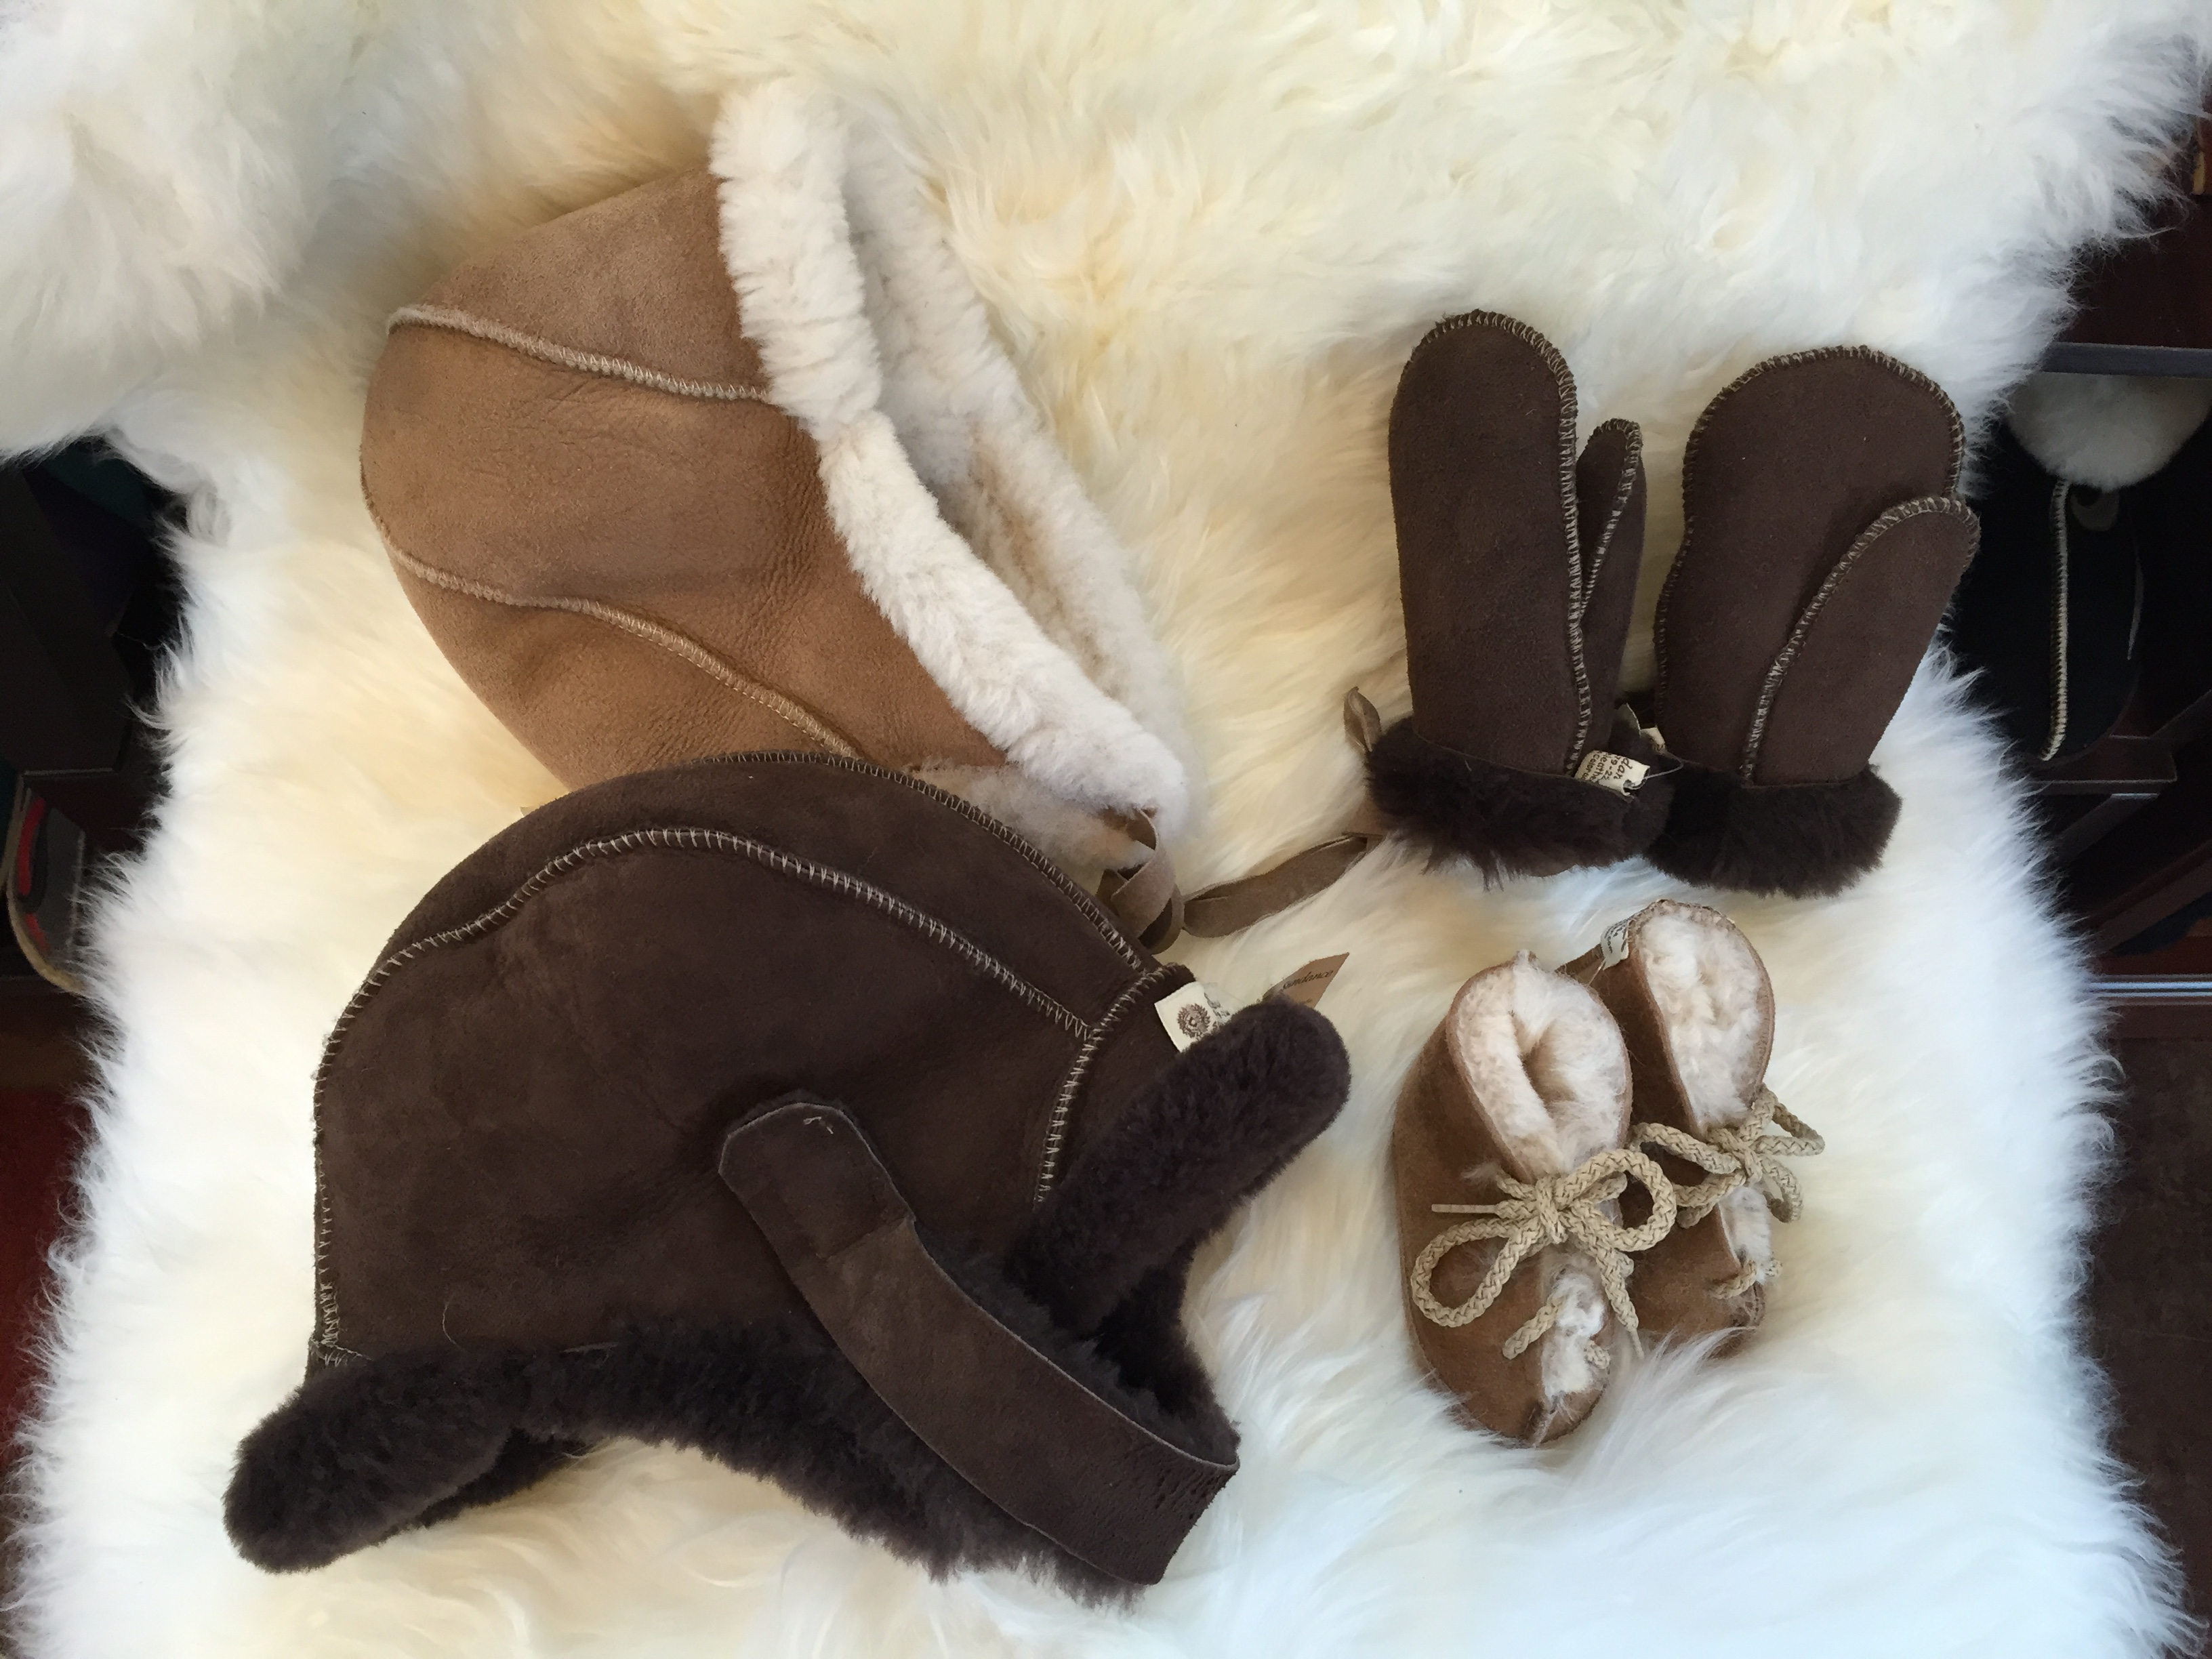 Sheepskin Baby Hats Mittens and Slippers